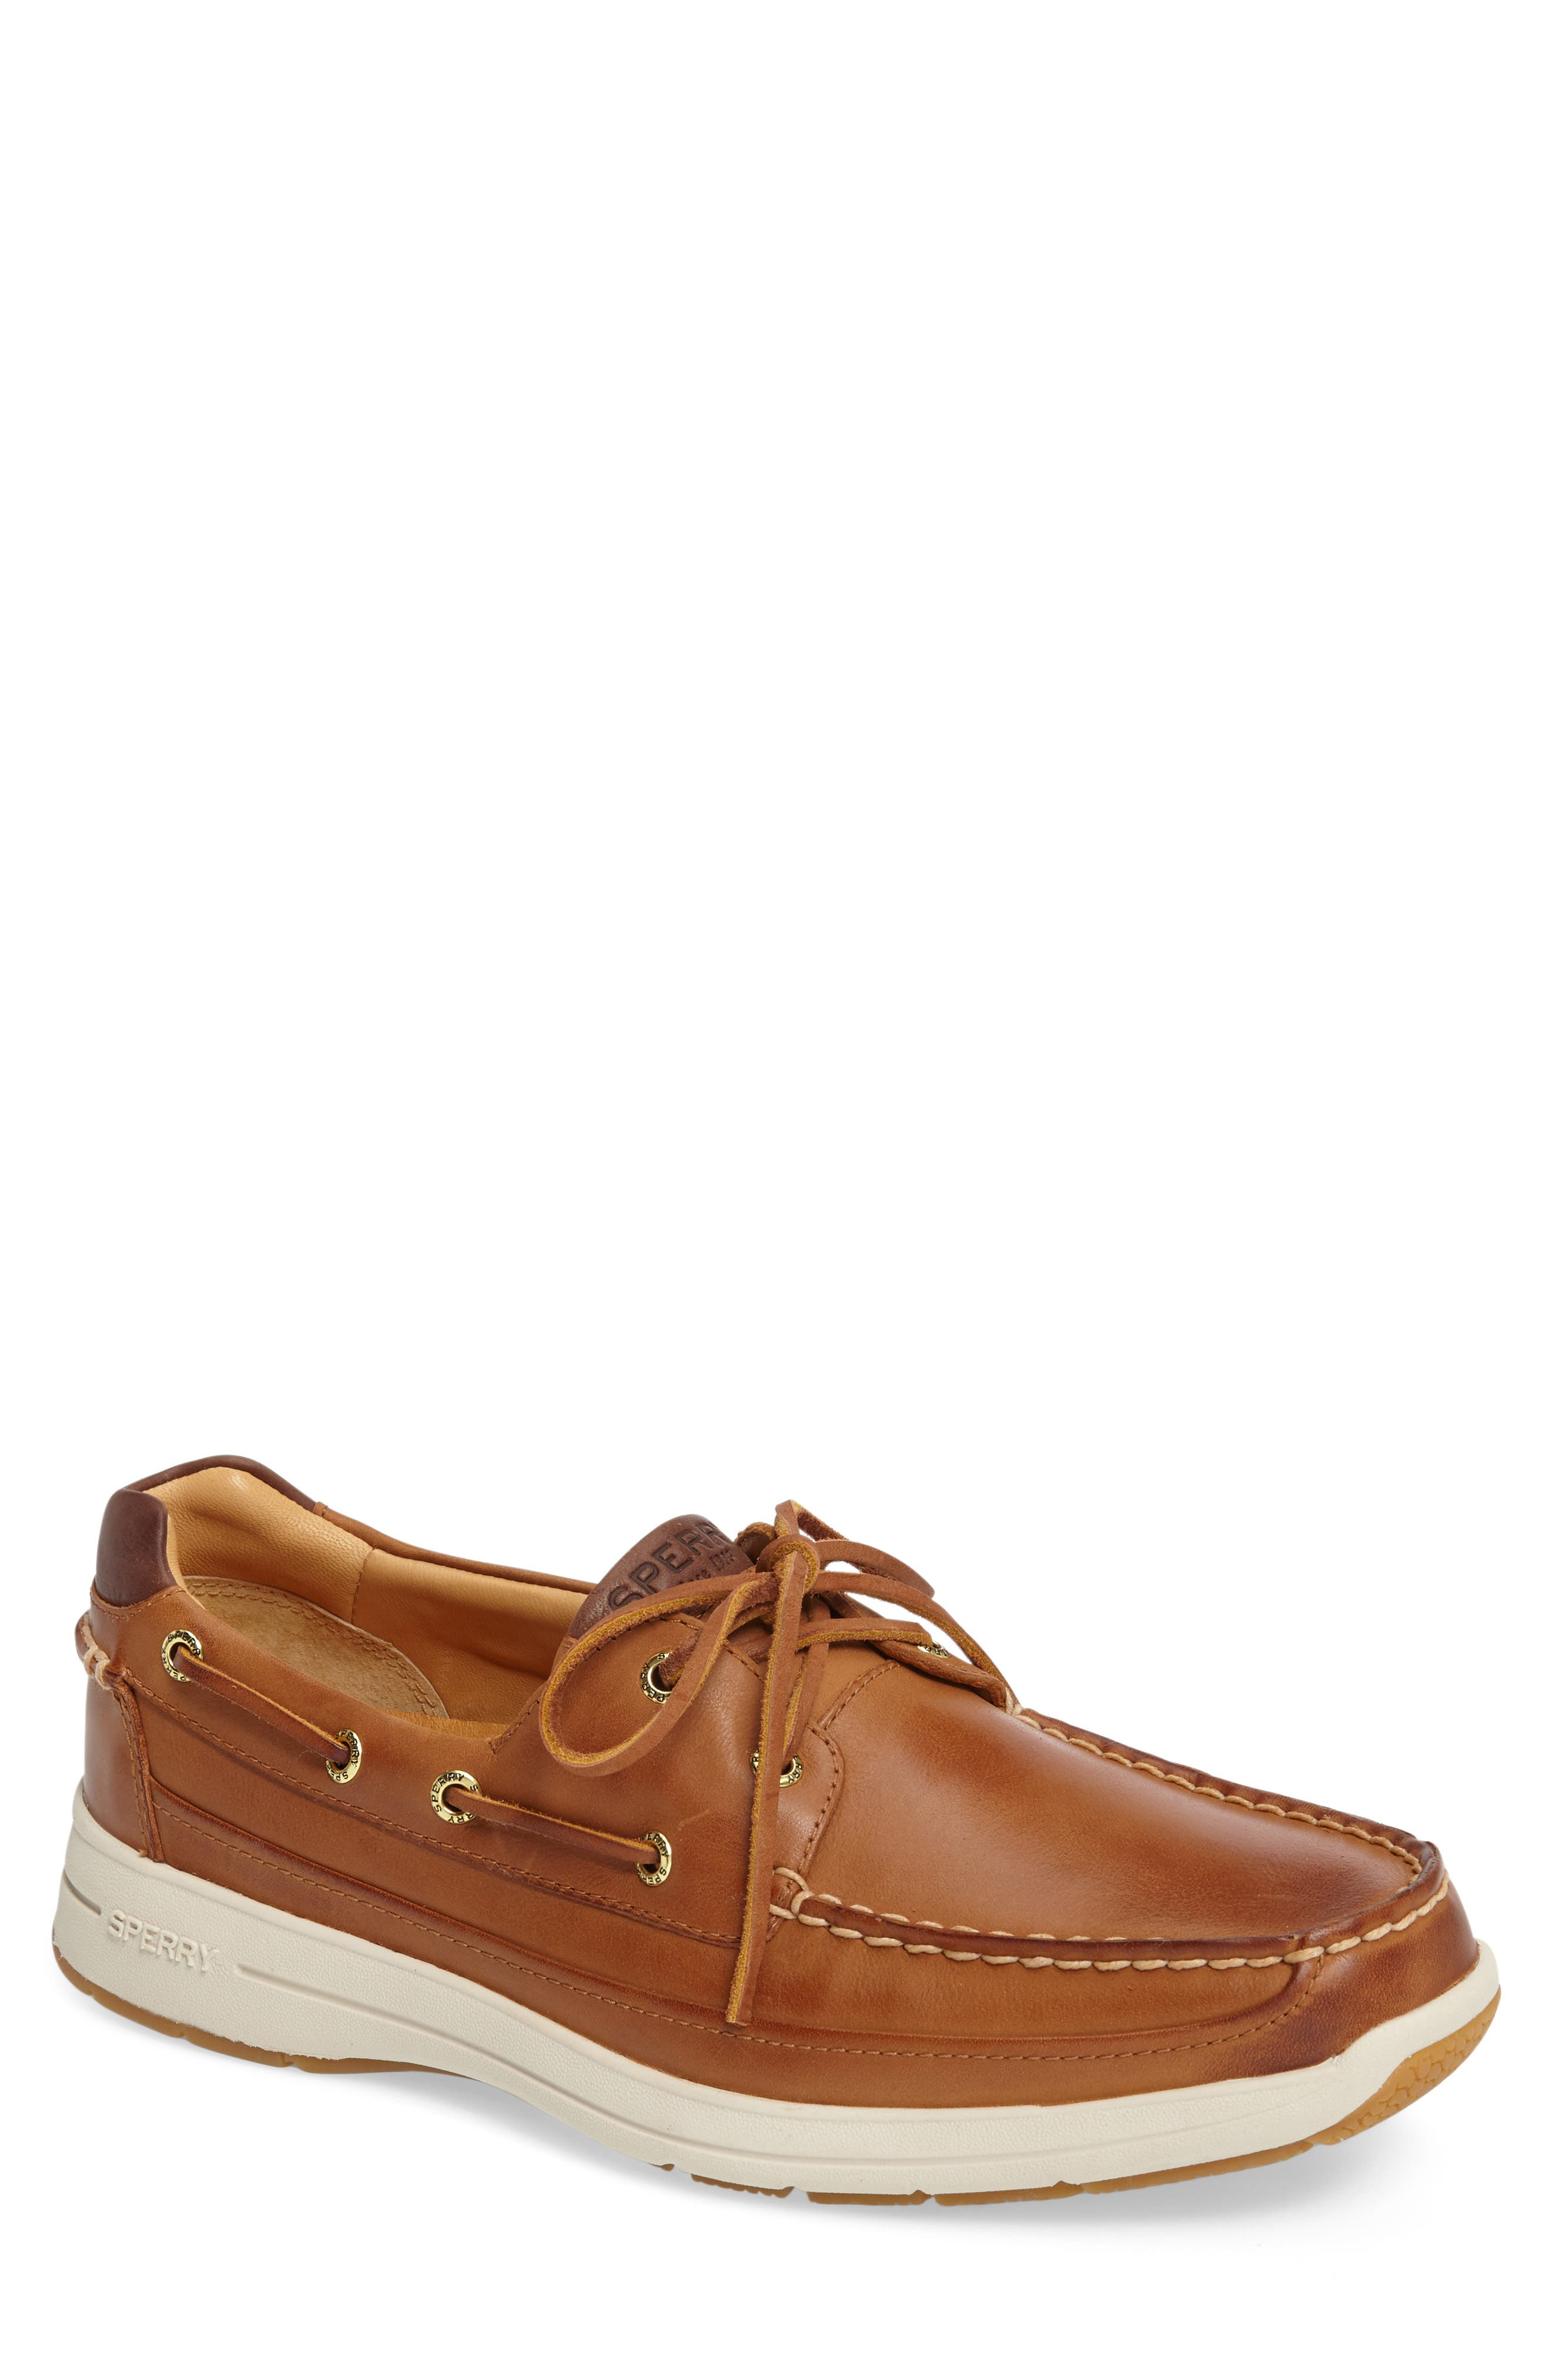 SPERRY, Gold Cup Ultralite Boat Shoe, Main thumbnail 1, color, TAN